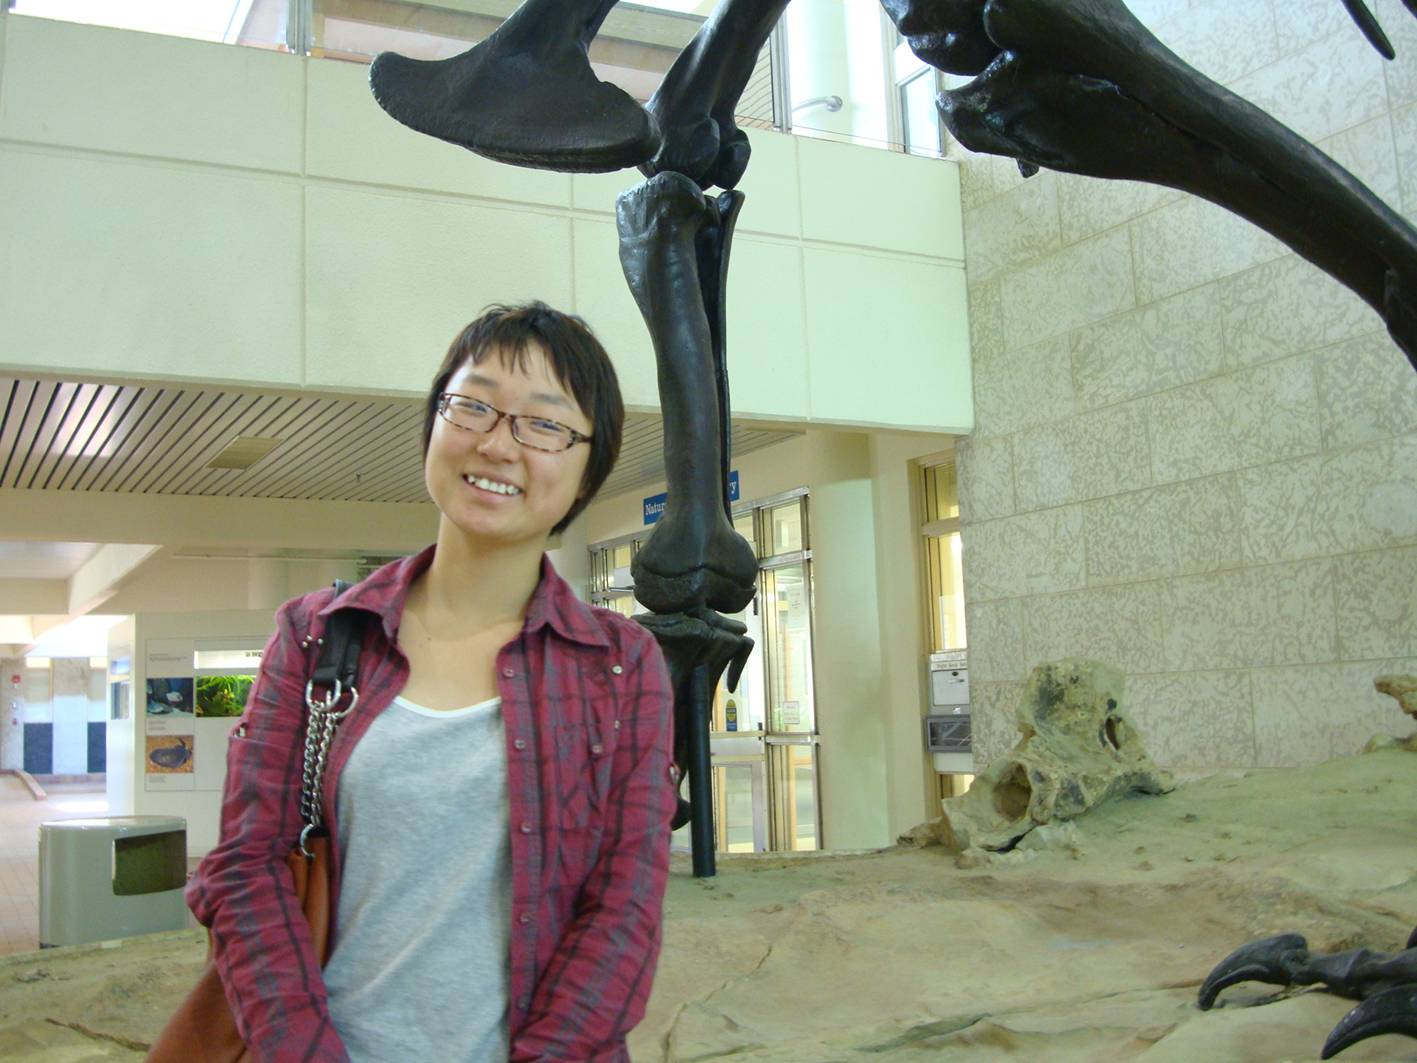 Picture: Panda beneath the T-rex. Touring the University of Saskatchewan Geology department.